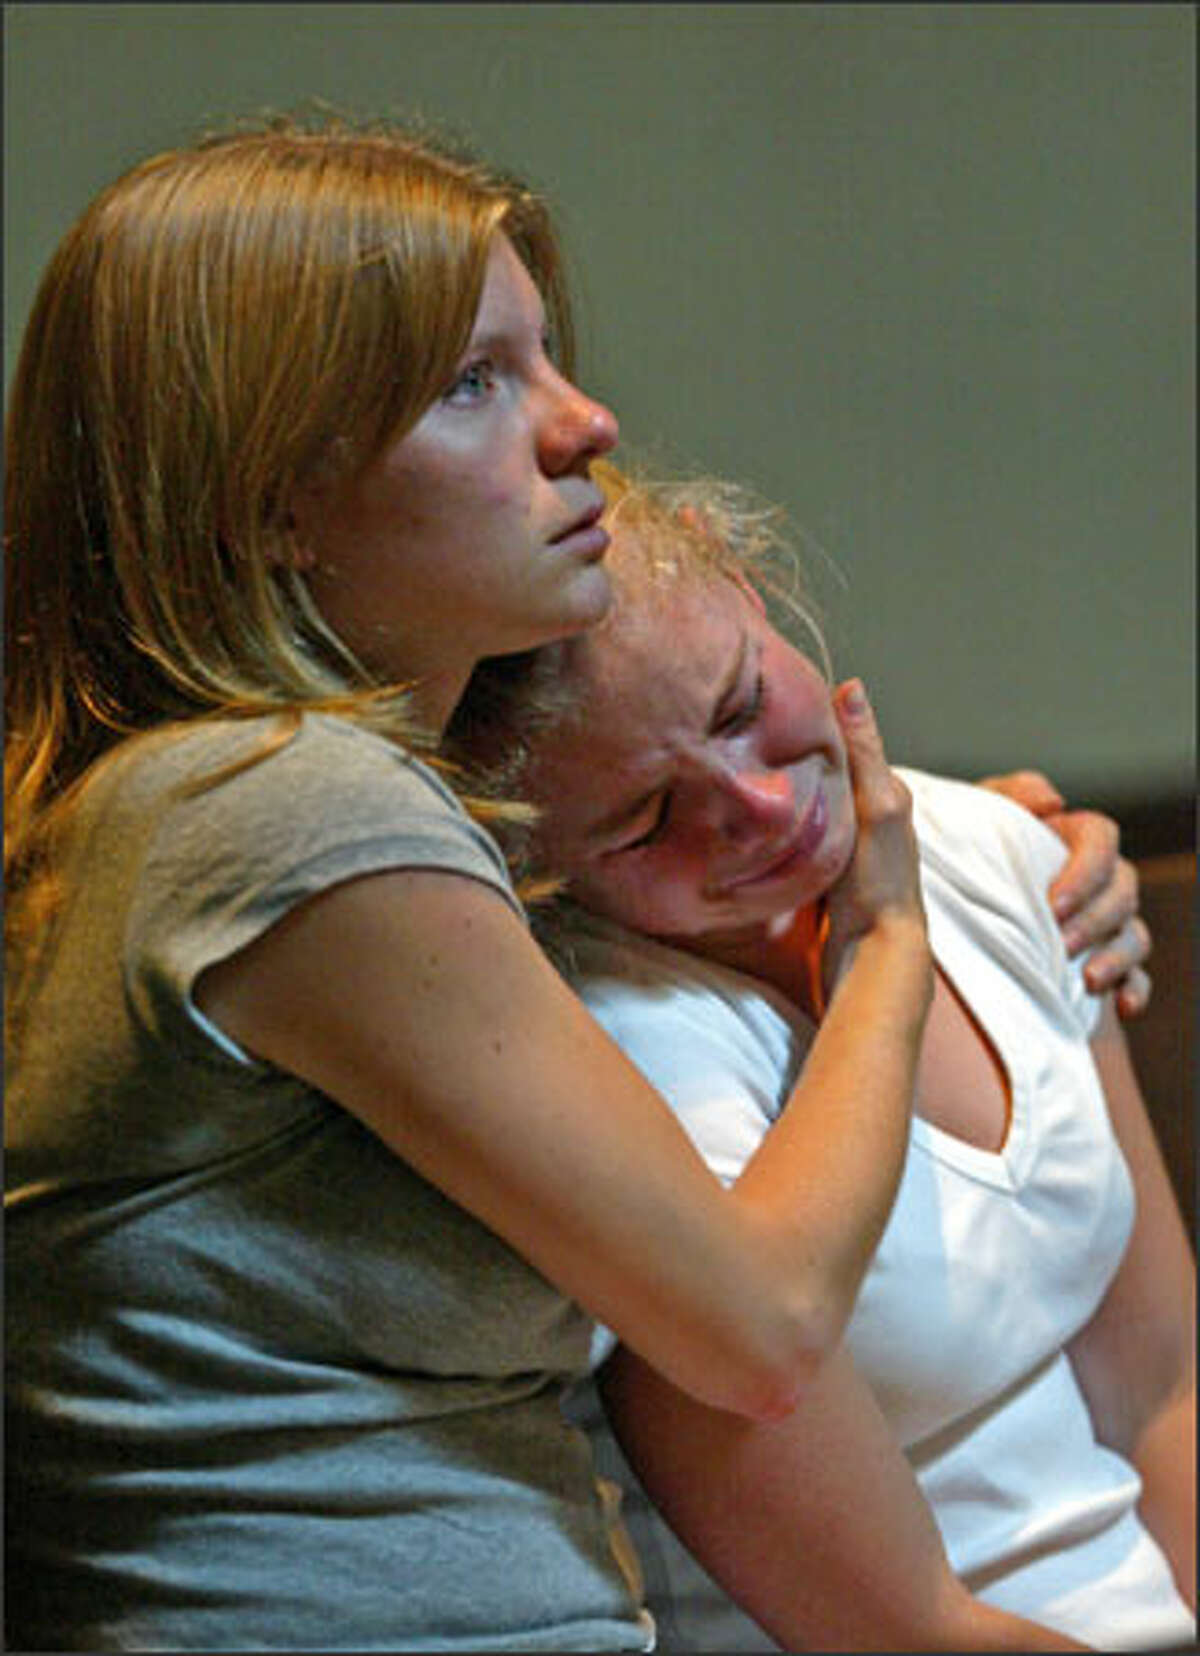 During a mass at St. James Cathedral, 21-year-old Sarah Estill, left, comforts her 17-year-old sister, Jenny, both of Seattle. They were affected by the prayers for the victims of the July 7 bombings in London, which killed more than 50 people. Sarah, recently returned from England, said she was glad it wasn't bigger, while Jenny remarked,